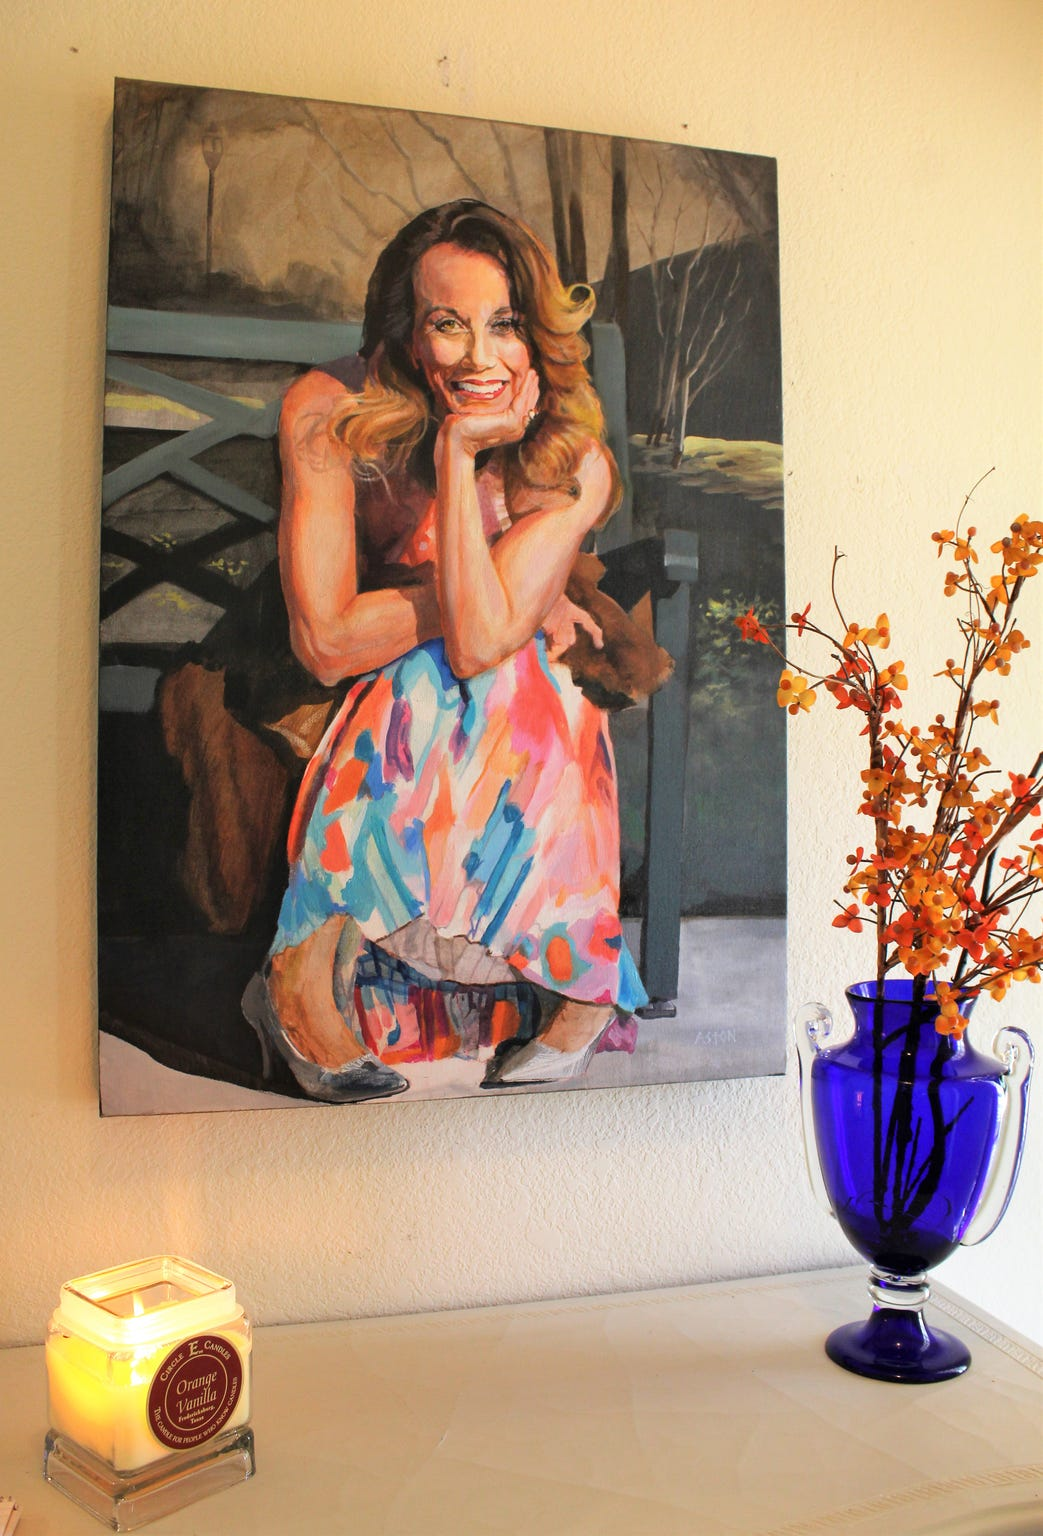 A gift from Matt Aston to Cindy Vest was a painting of her seated on a bench at Everman Park in downtown Abilene. It's displayed at the entry of the home the share here.